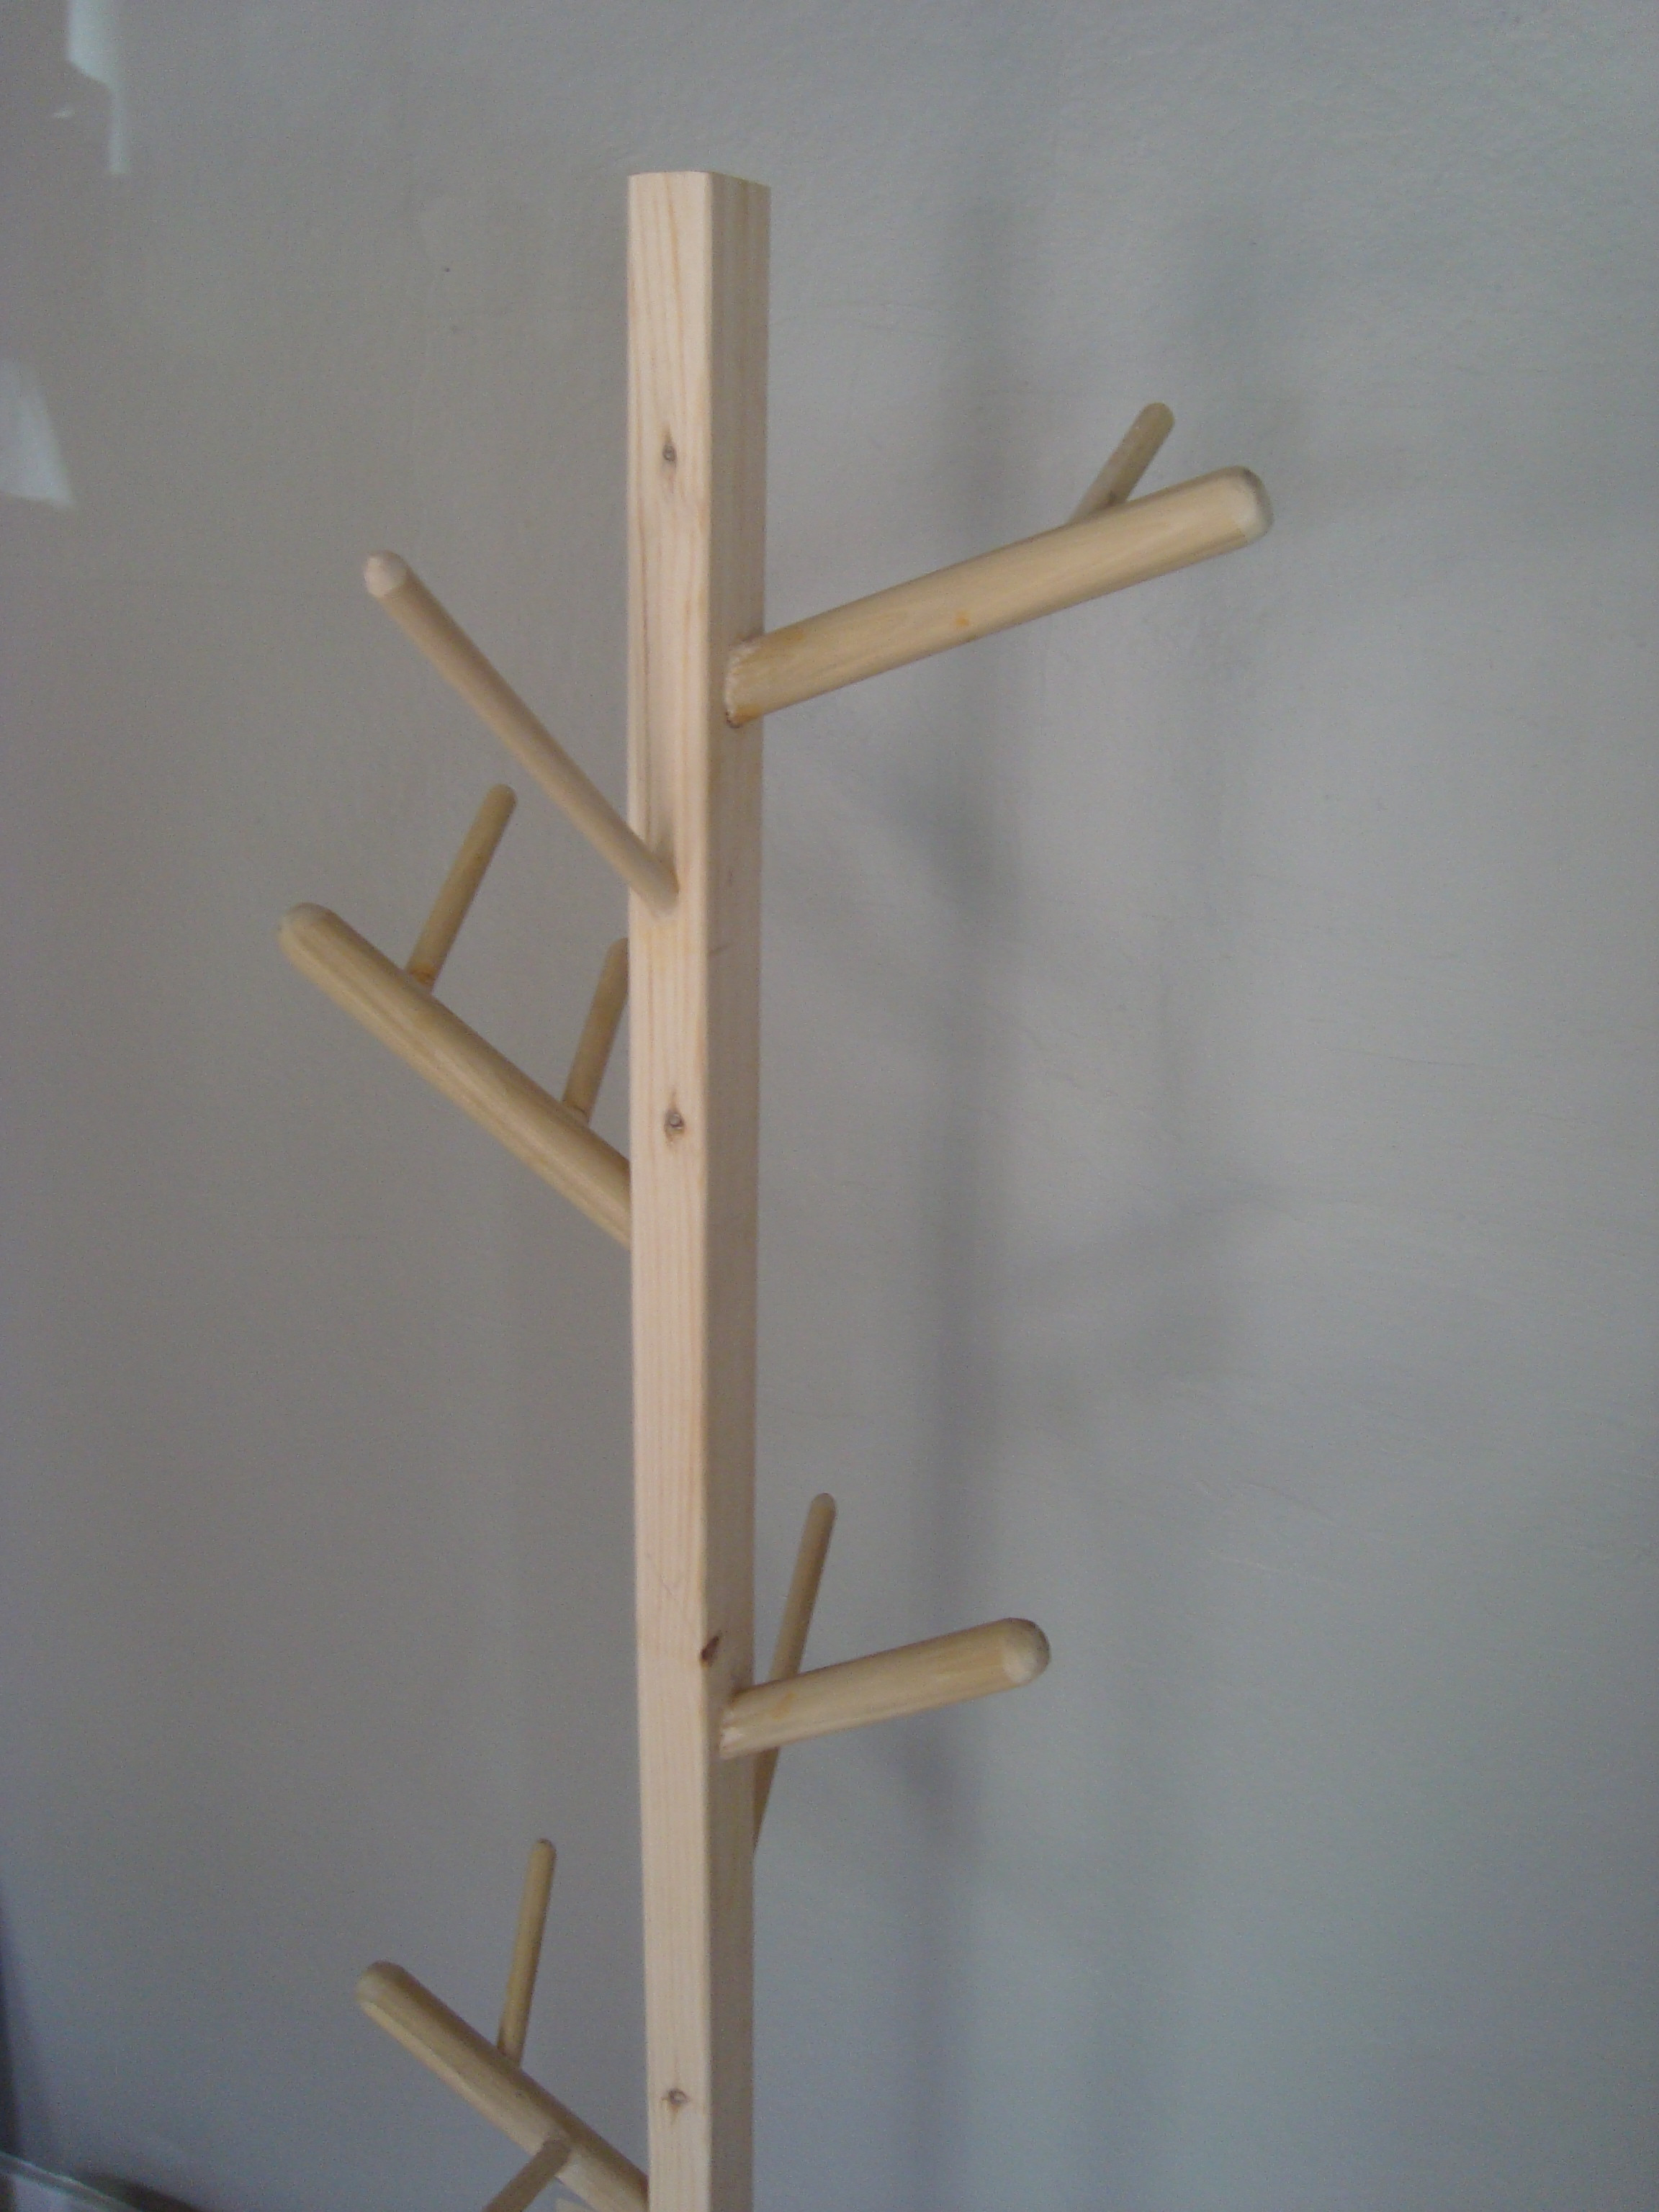 Best ideas about DIY Coat Racks . Save or Pin 301 Moved Permanently Now.